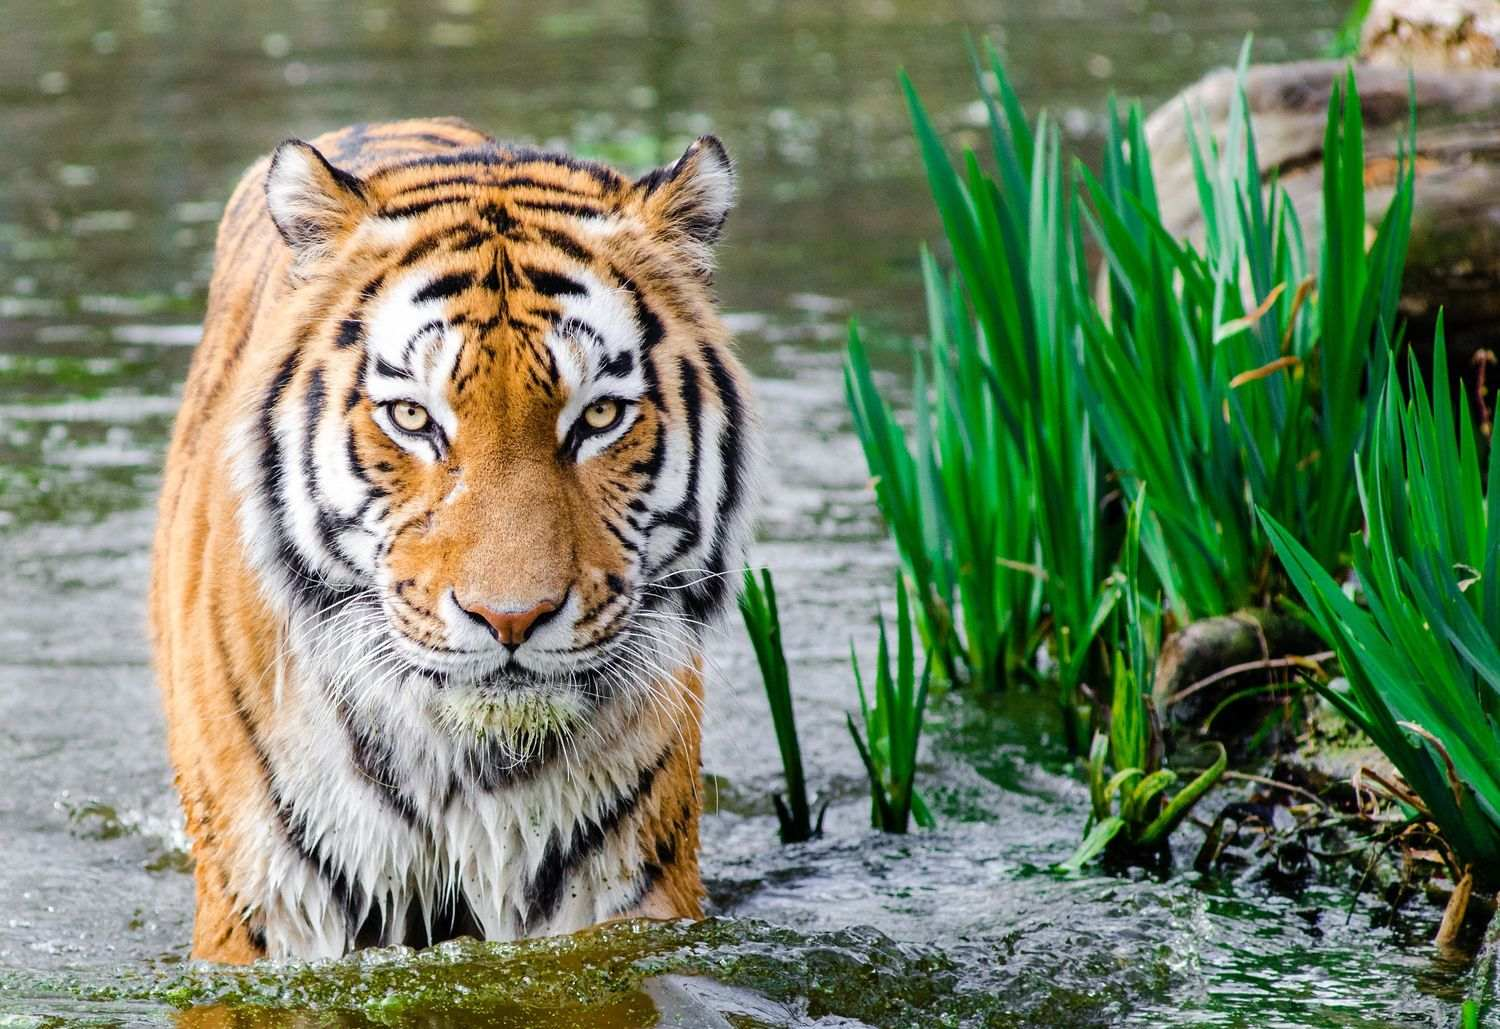 Tiger in the water in India